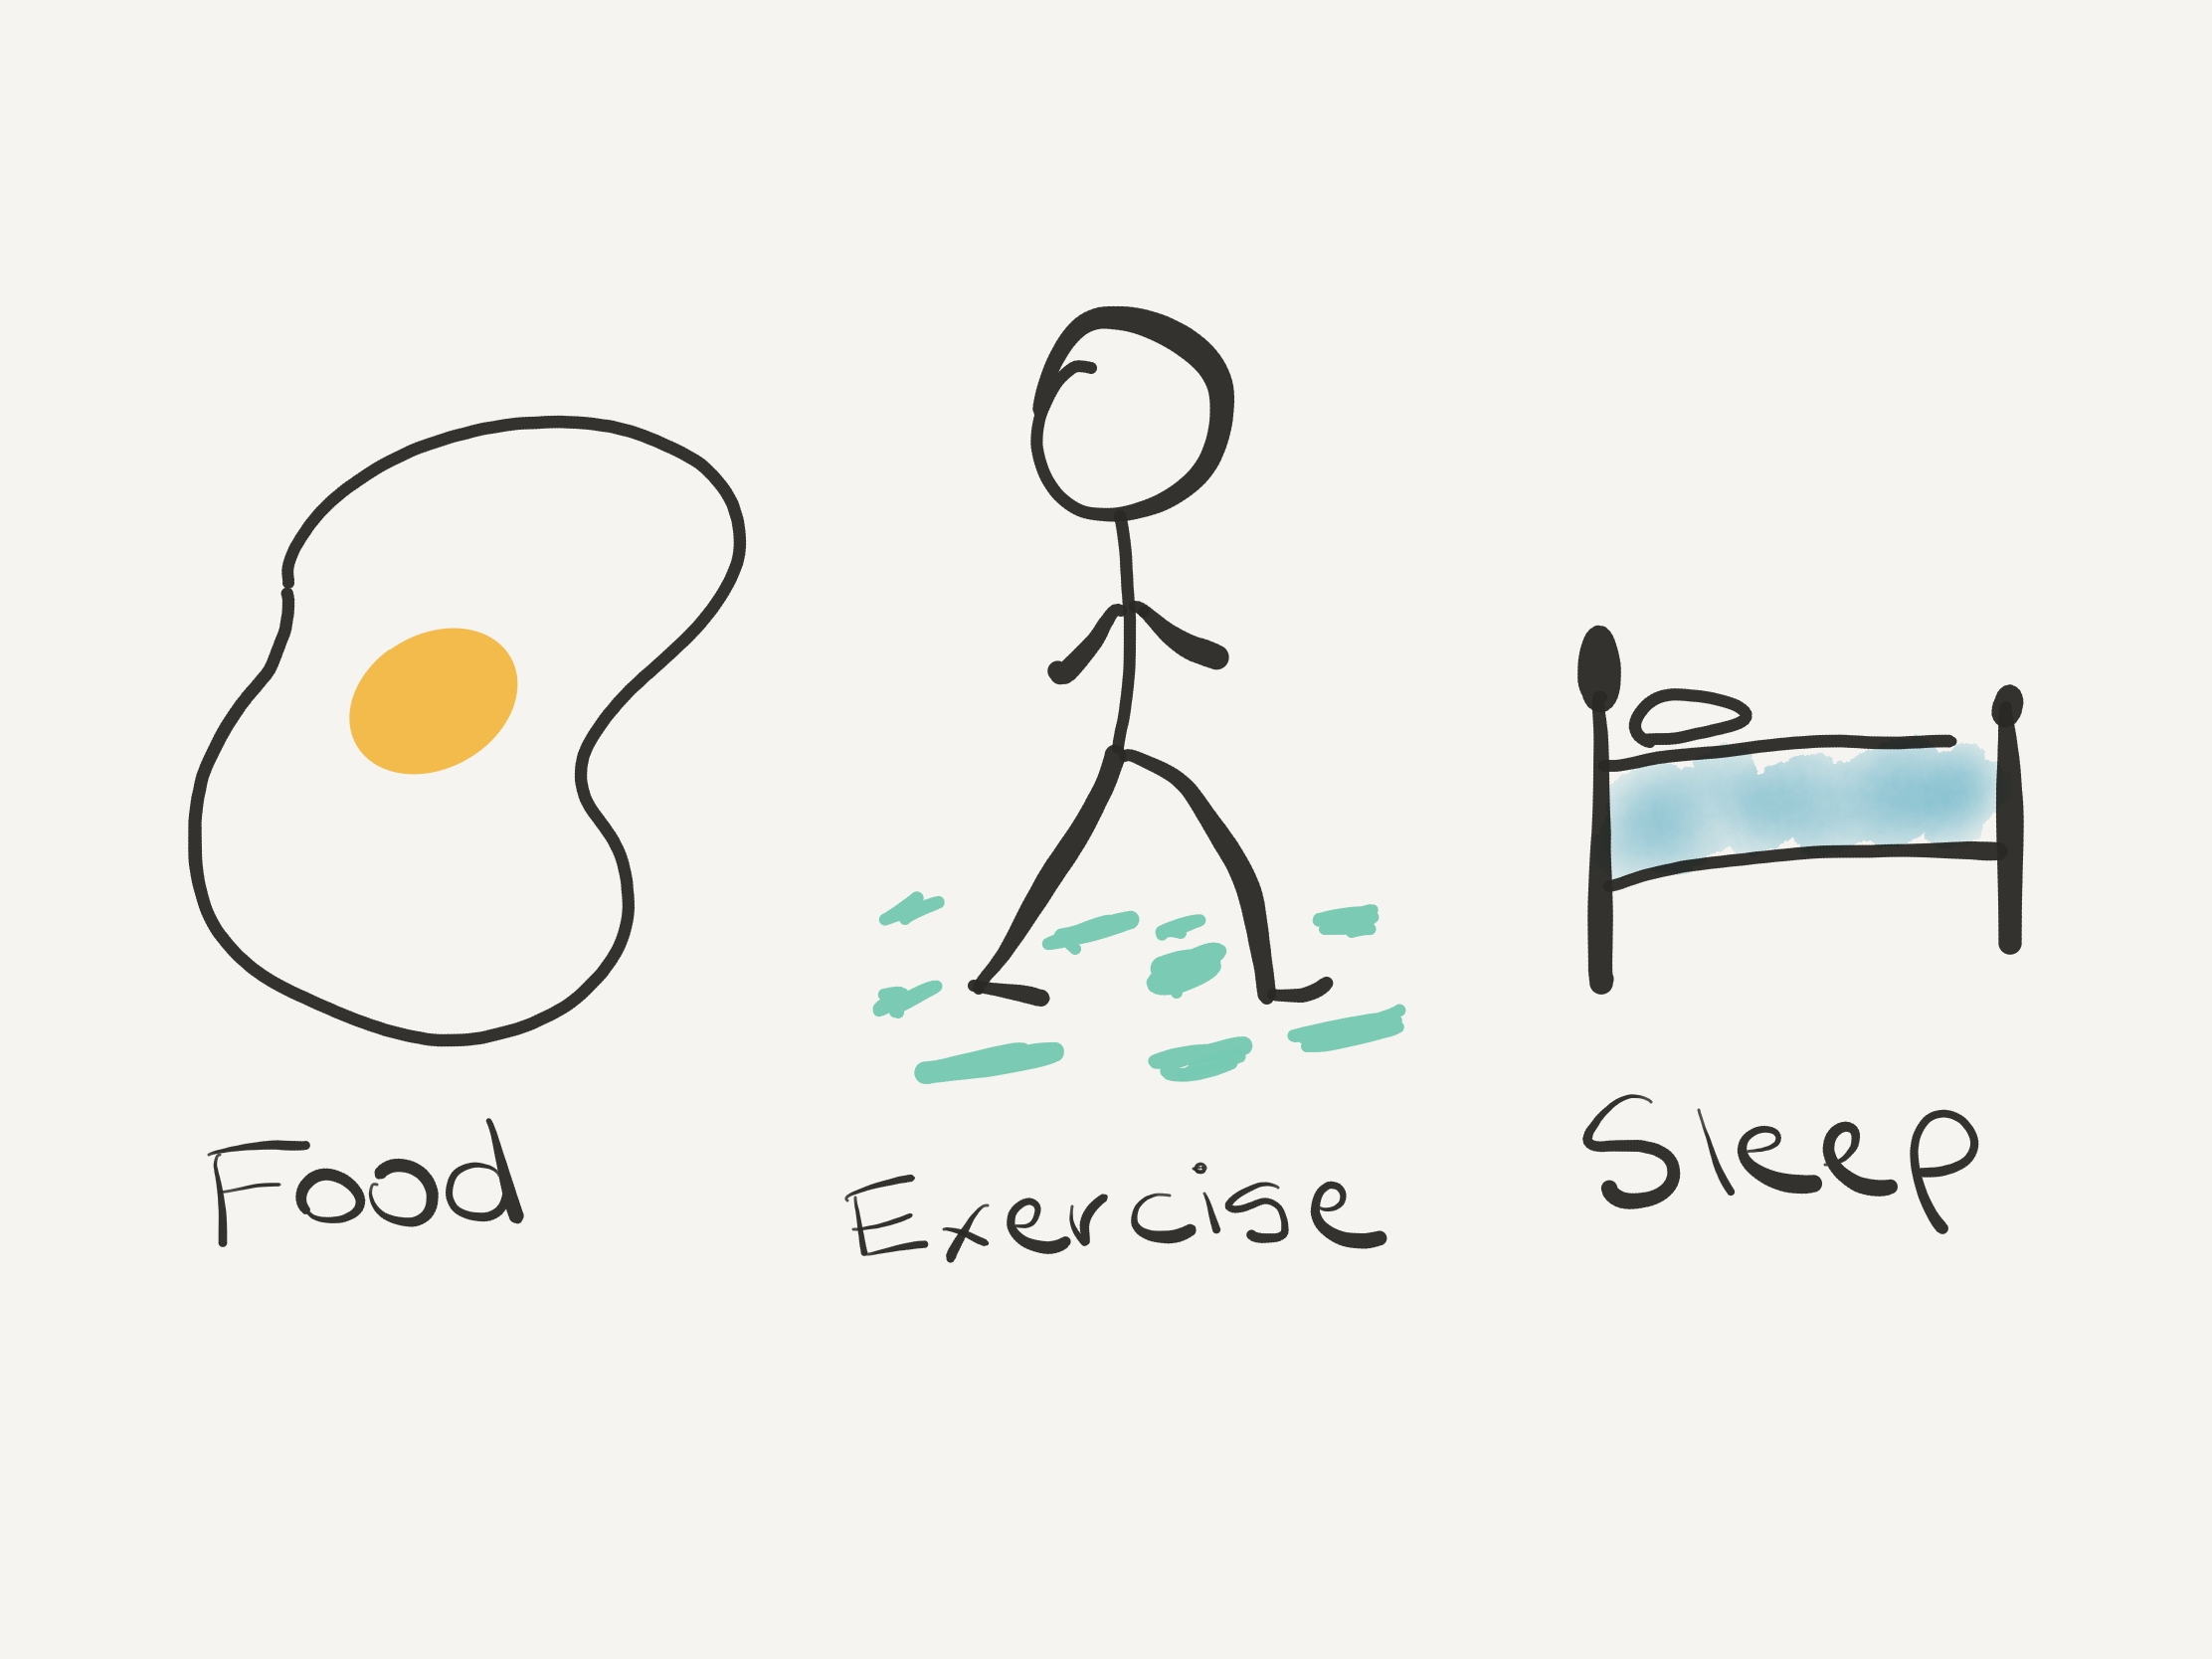 The 3 most potent tools for improving your health (food, exercise & sleep)